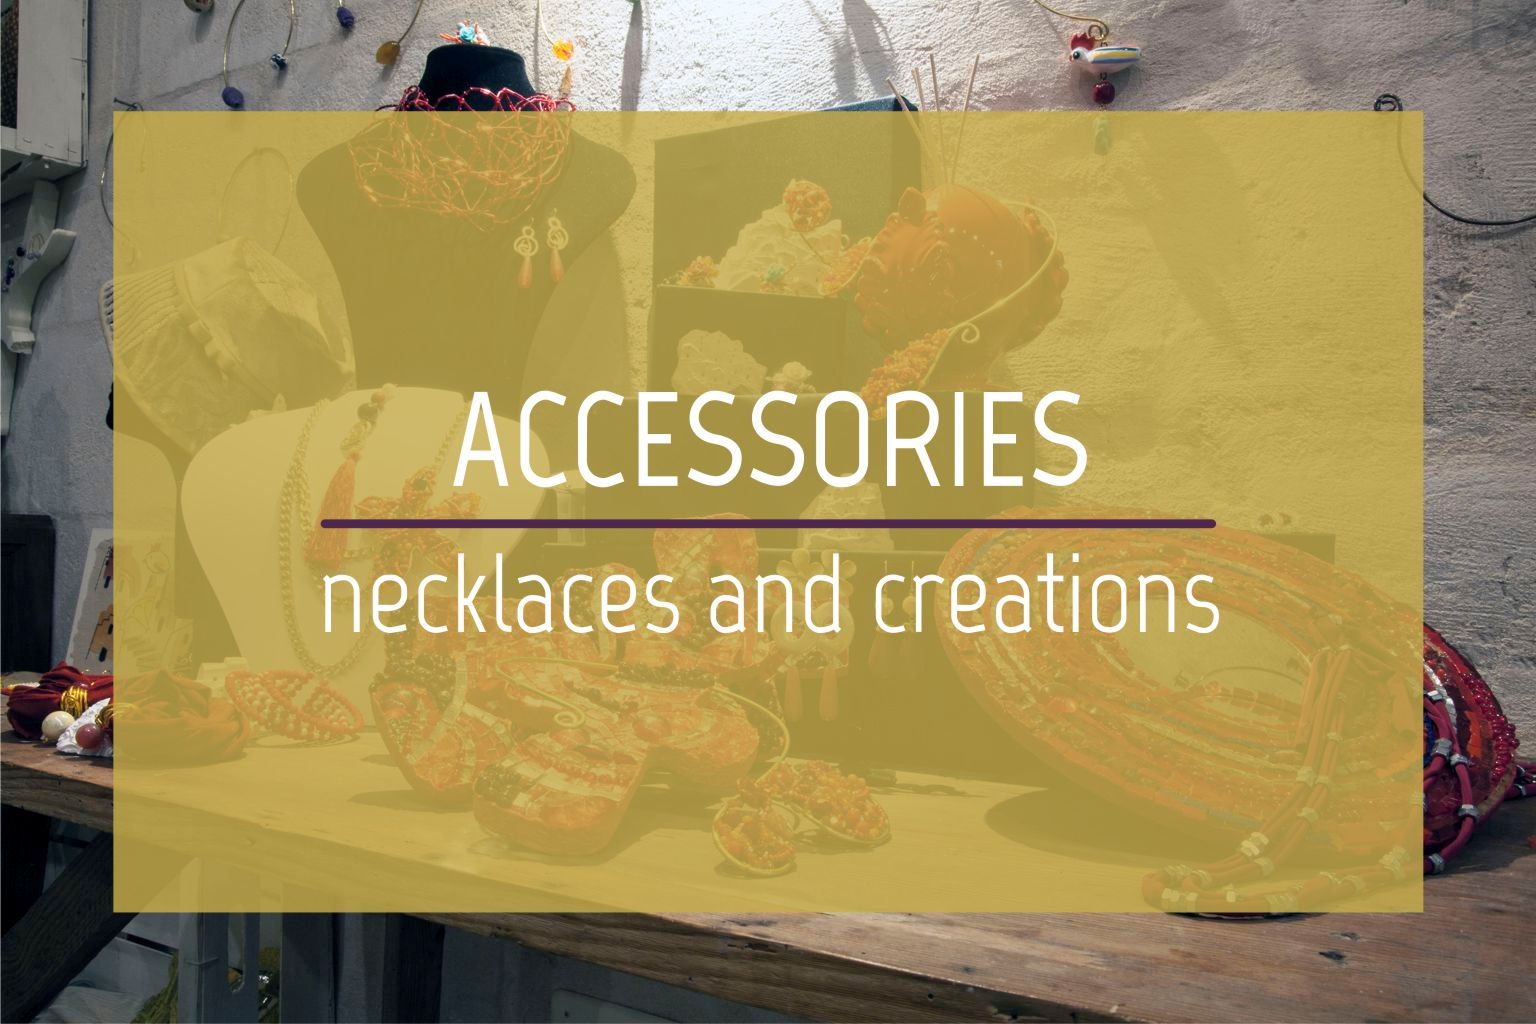 Accessories and jewels